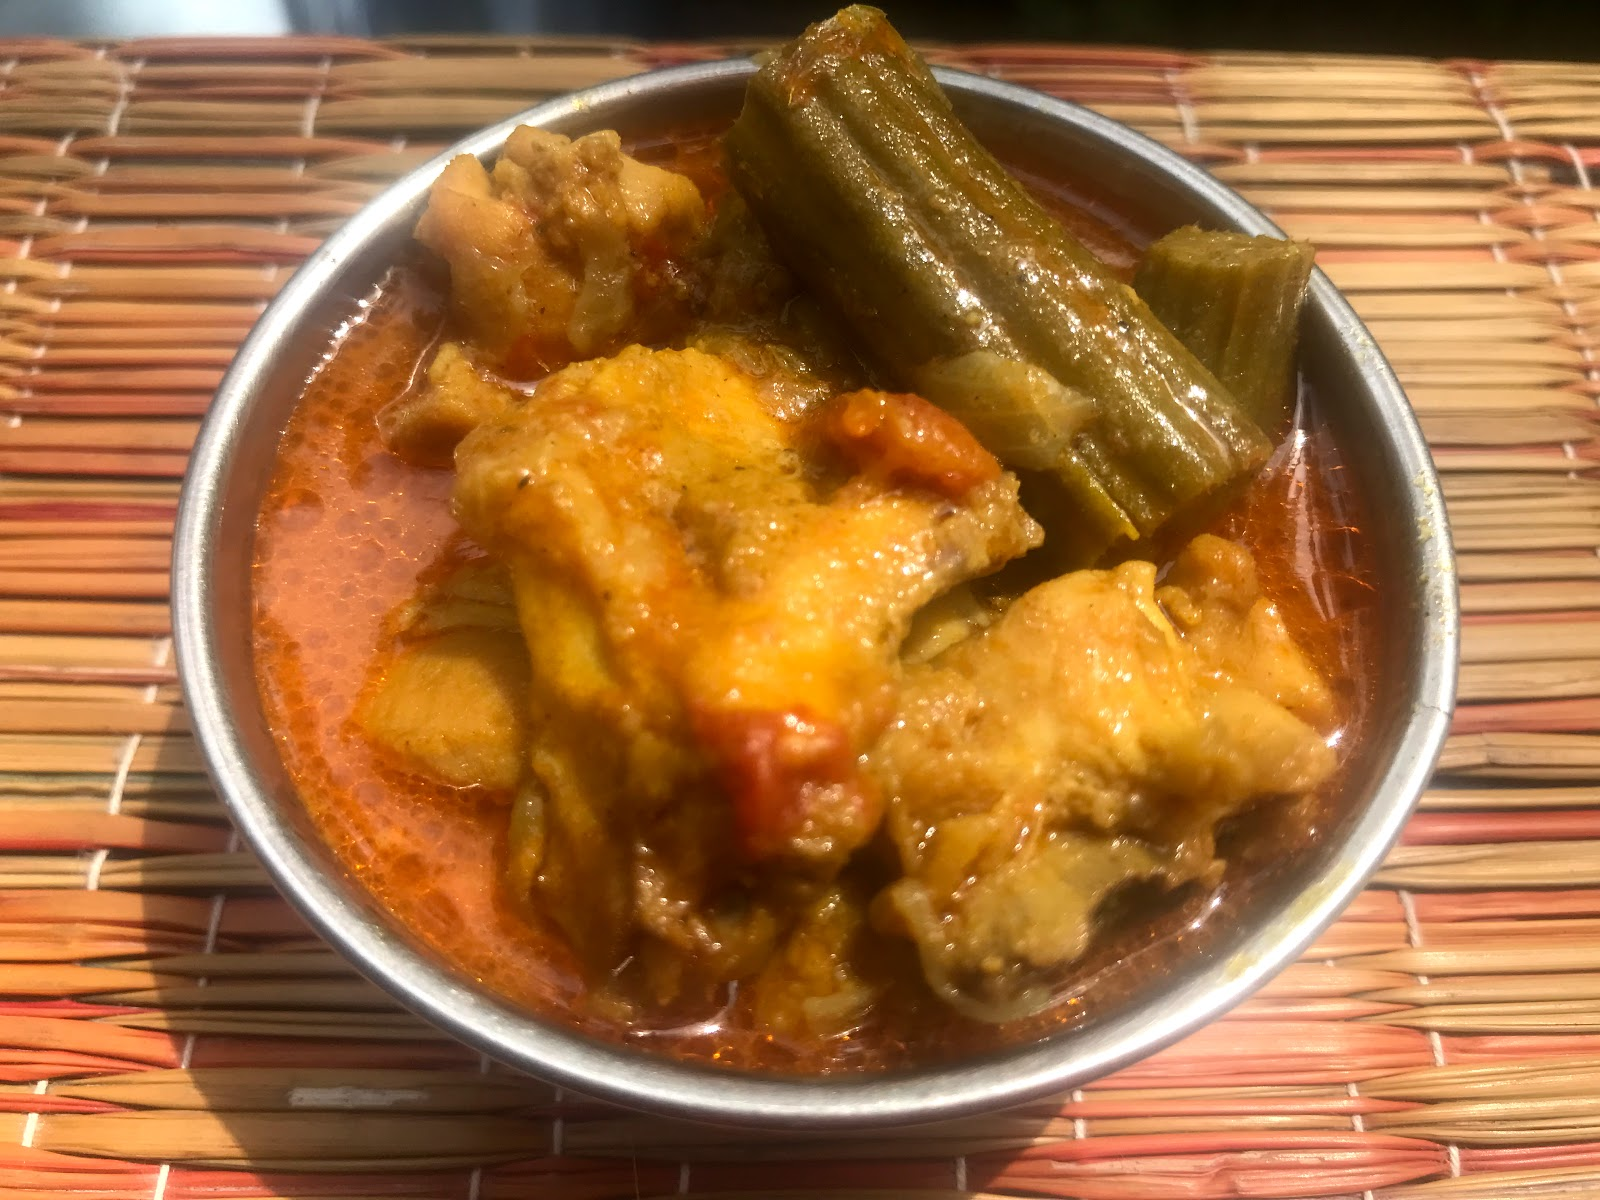 https://www.shobiskitchen.com/2019/09/chicken-drumstick-curry.html